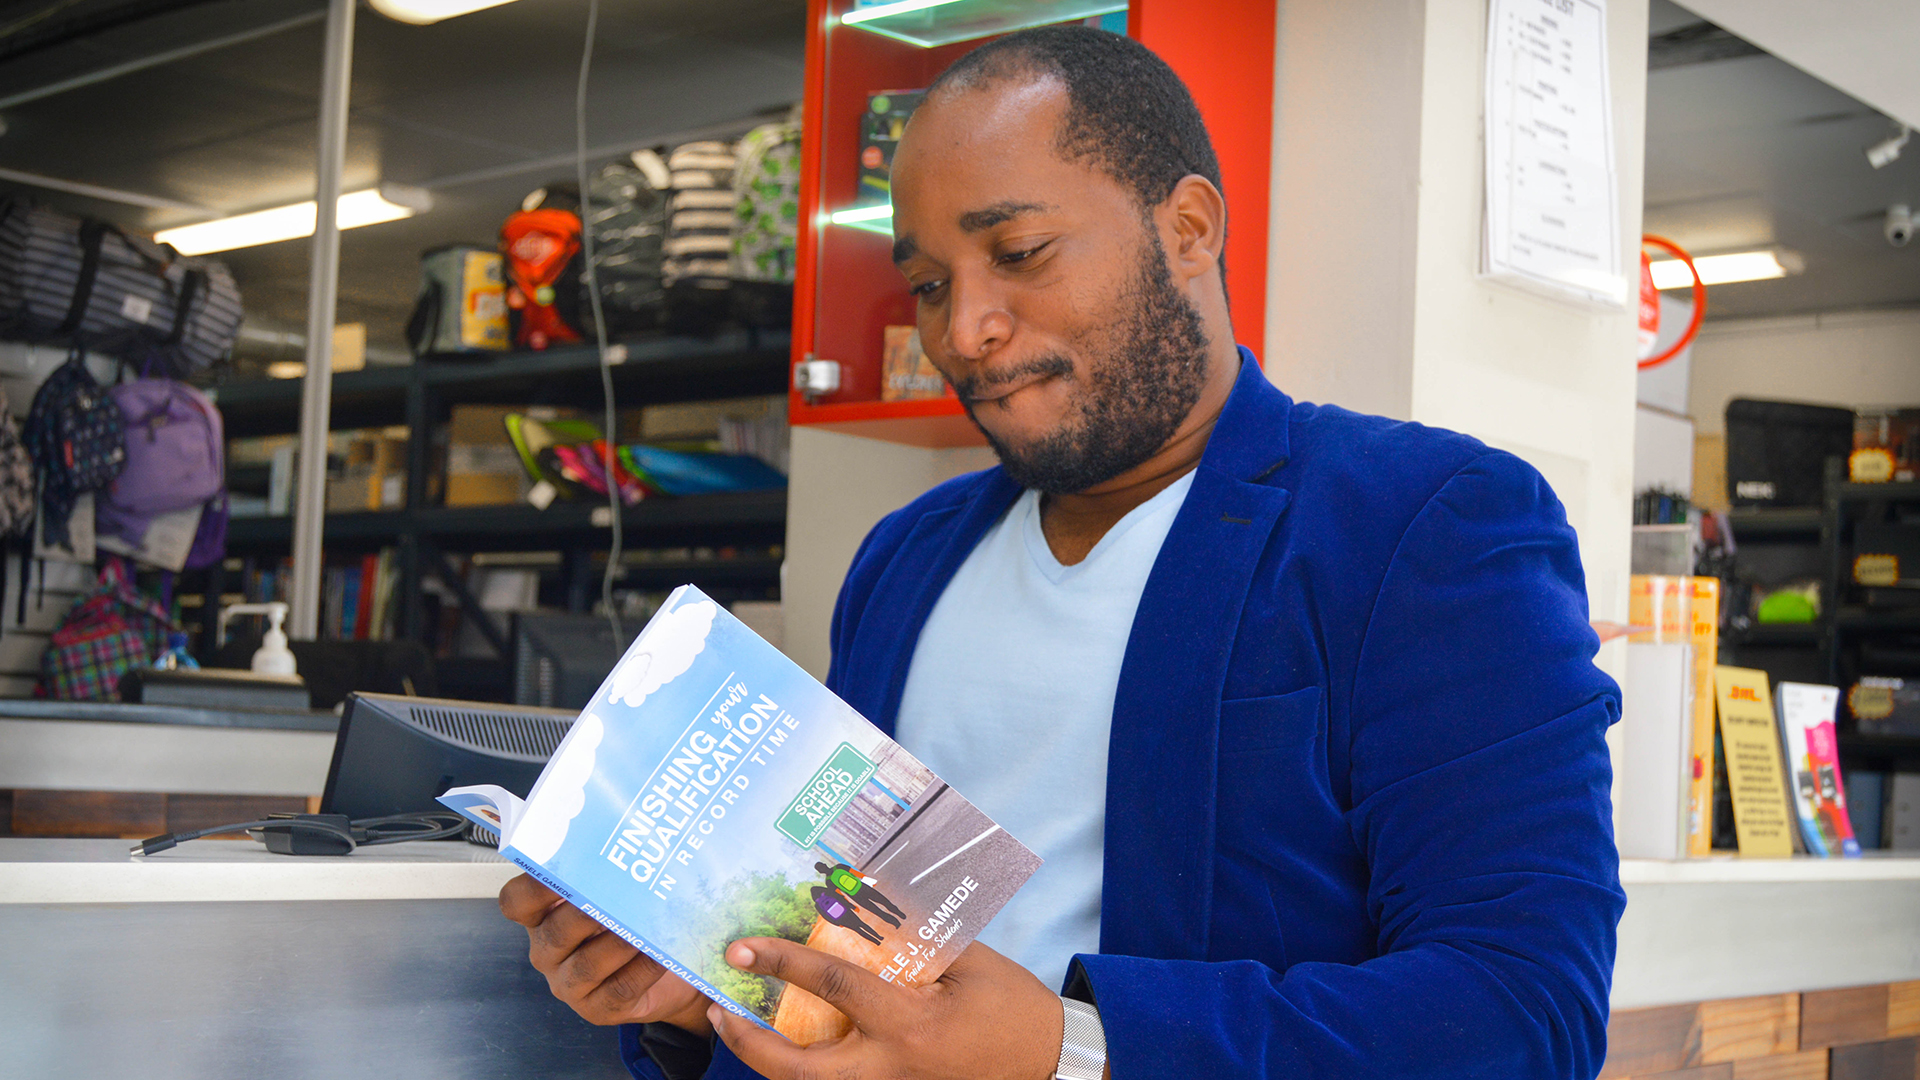 Mr Sanele Gamede with his new book